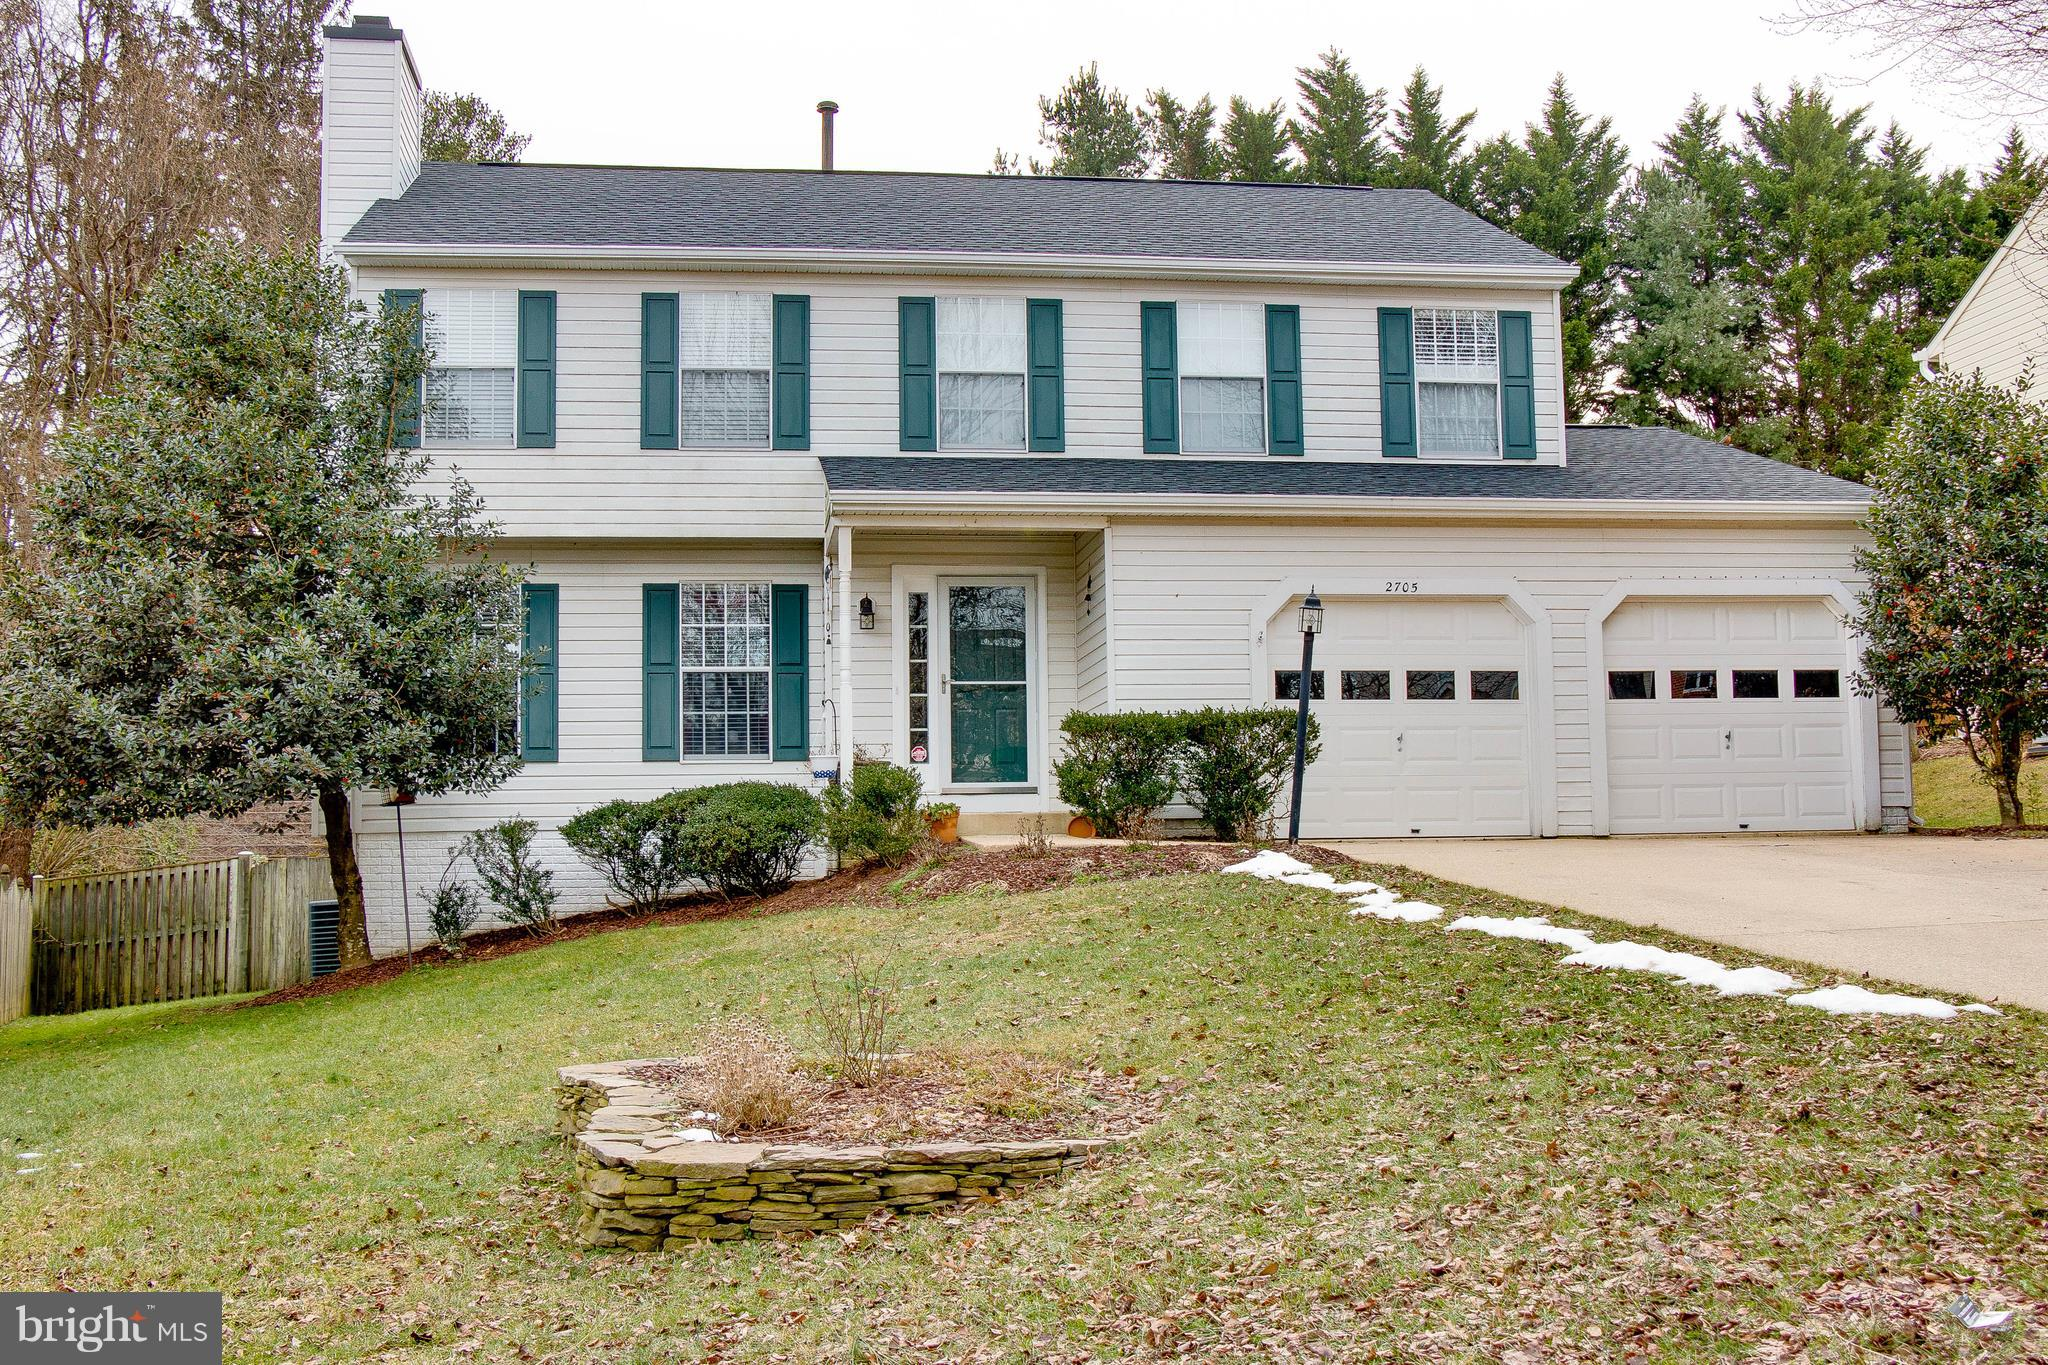 2705 VERGILS COURT, CROFTON, MD 21114